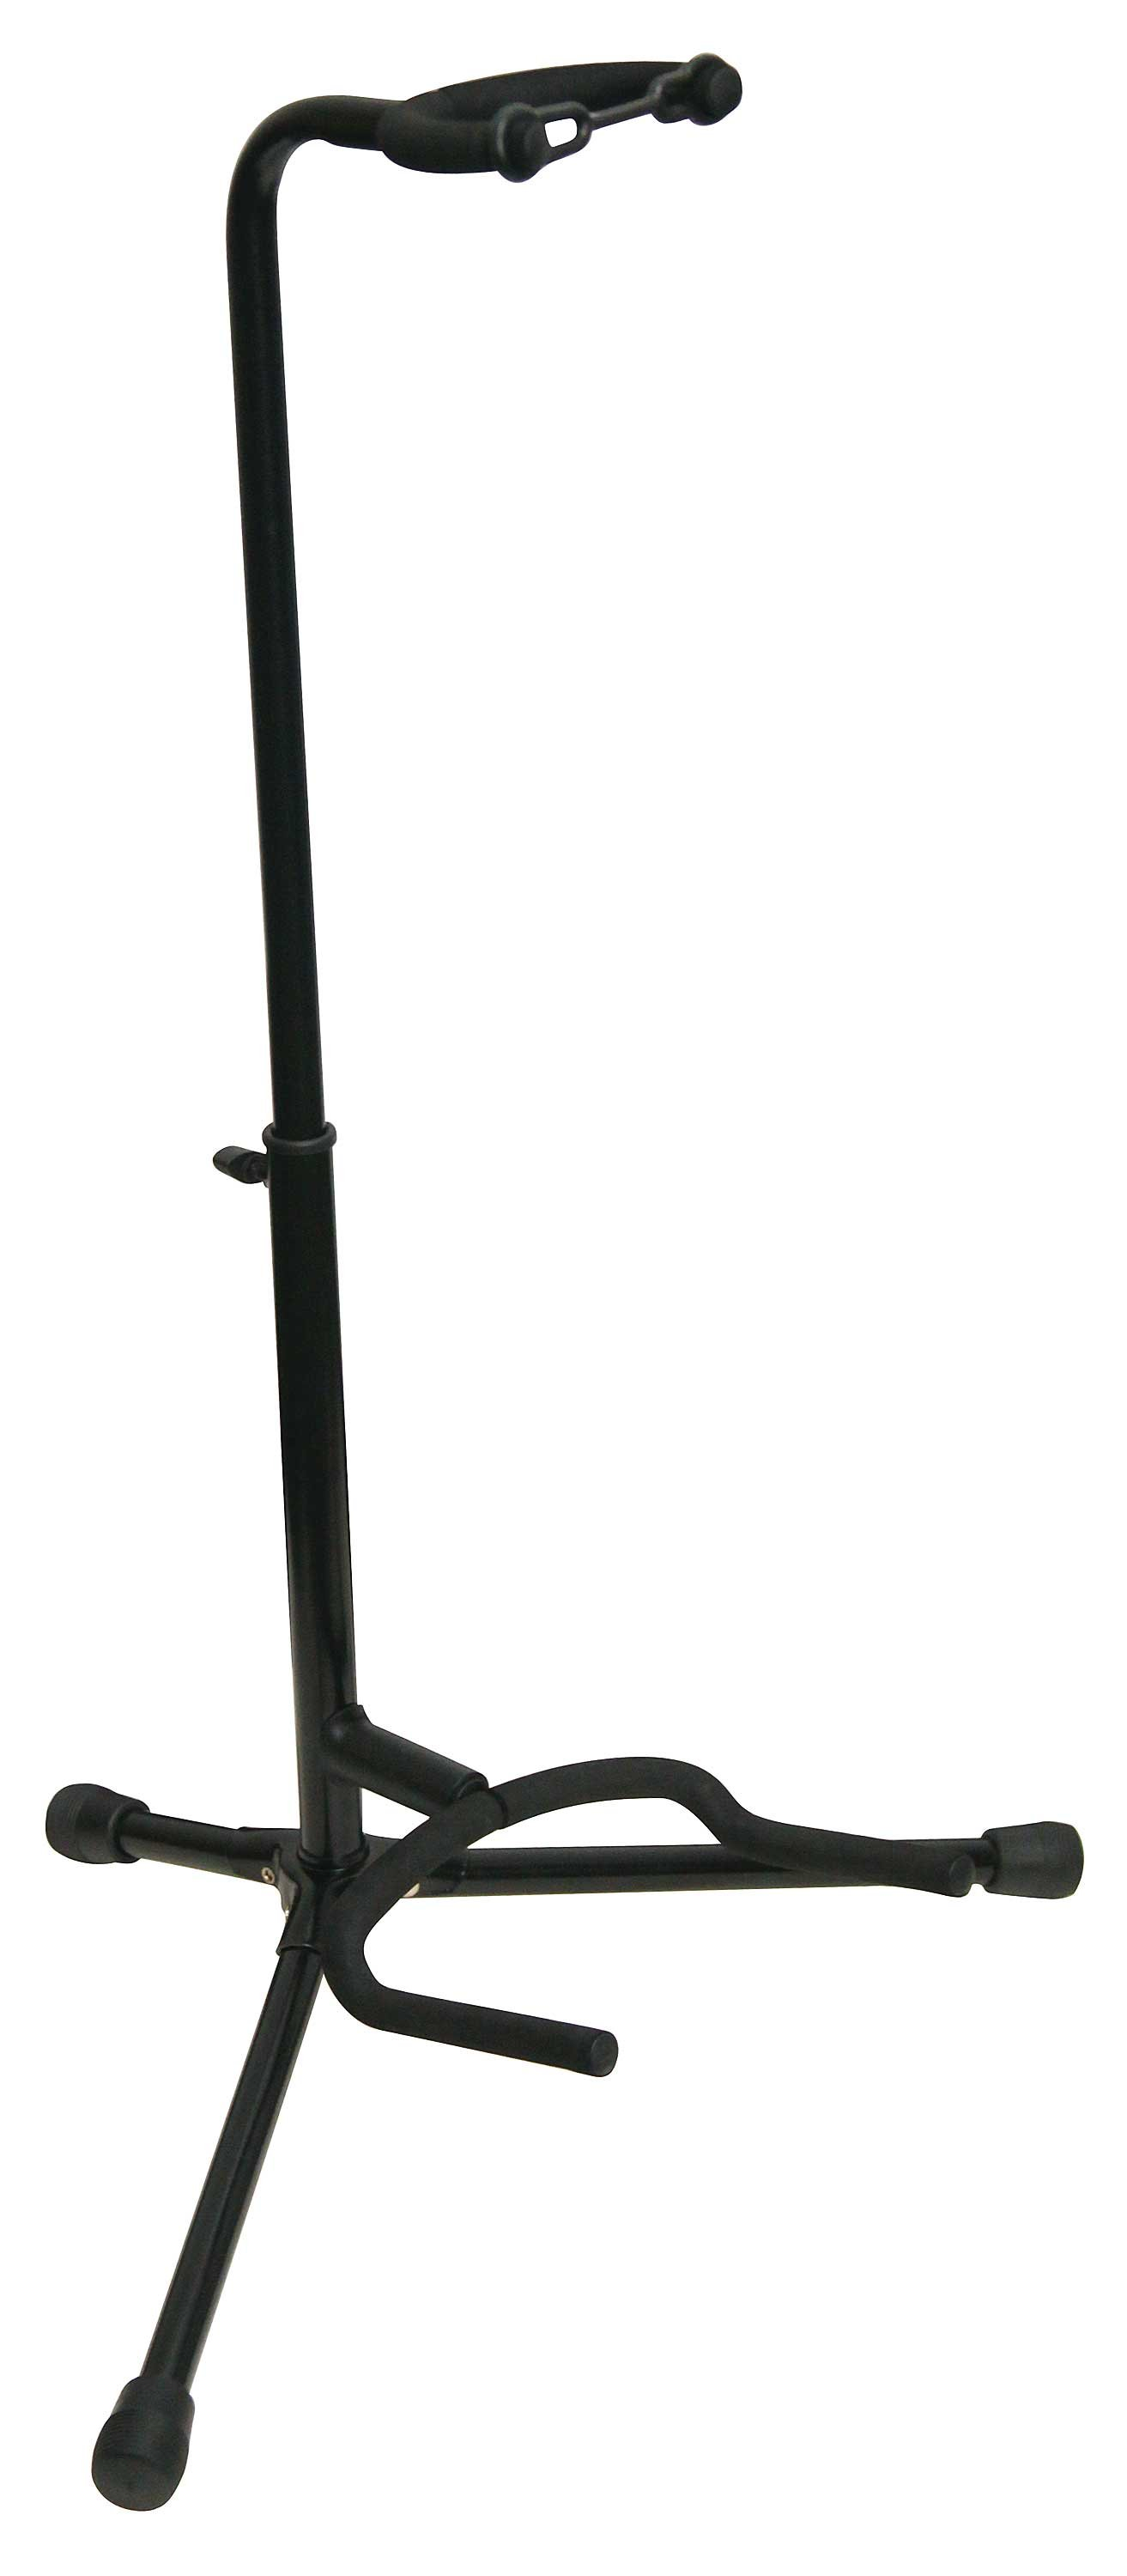 Deluxe Yoke-Style Guitar Stand with Foam Padding